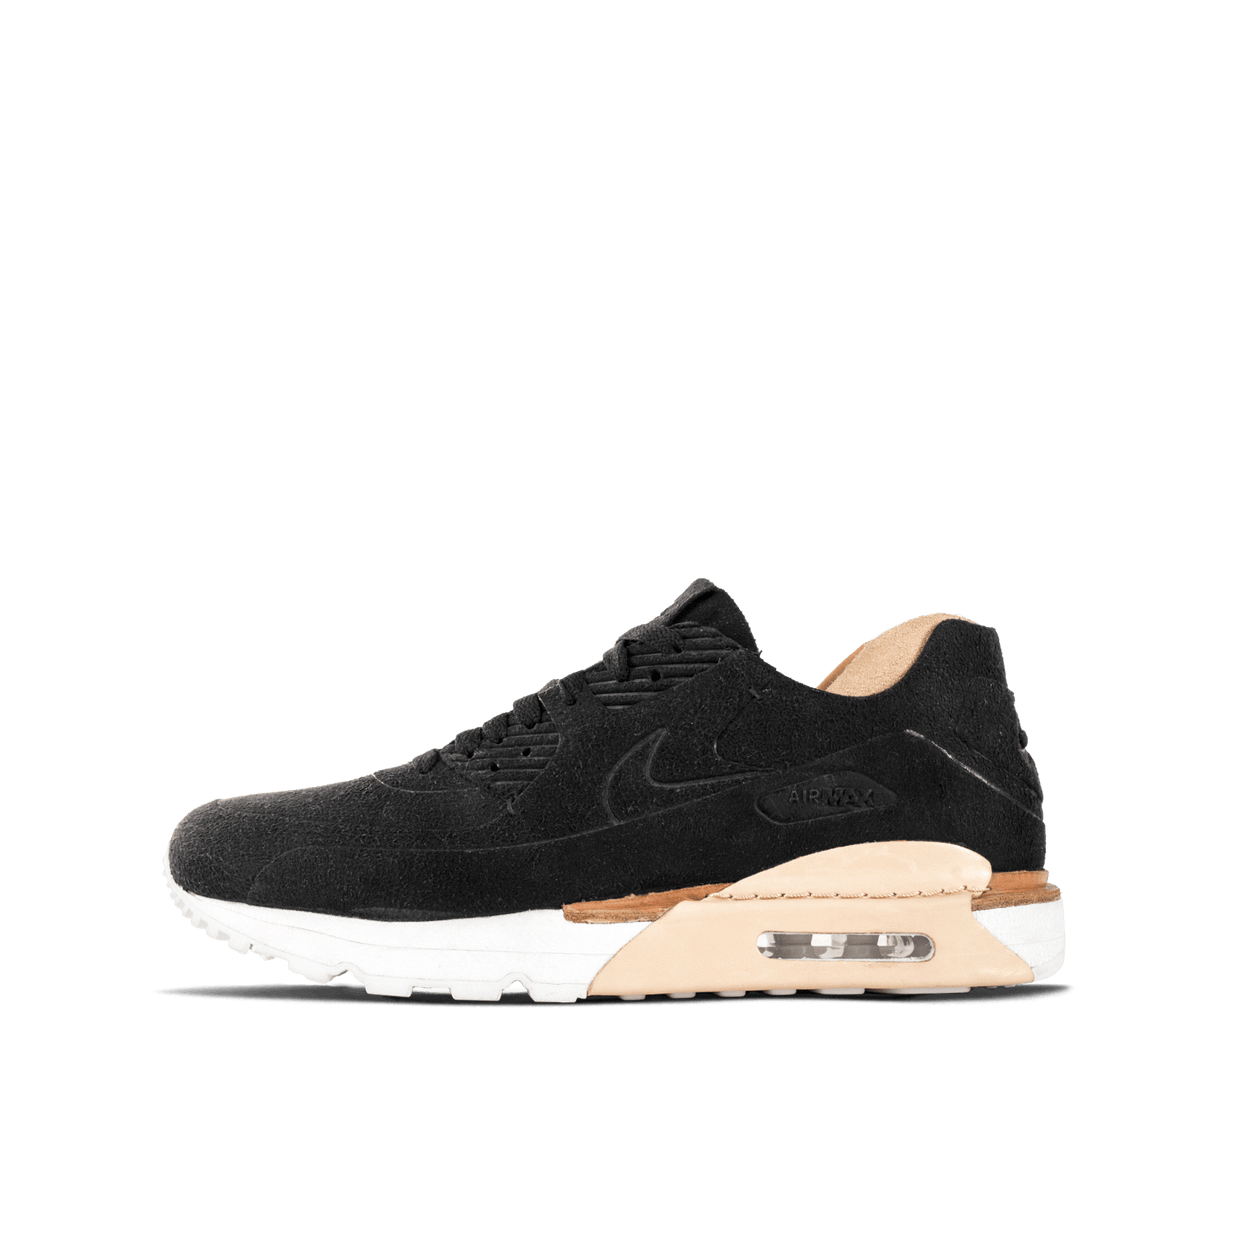 9c7f09128 Air Max 90 Royal - Black